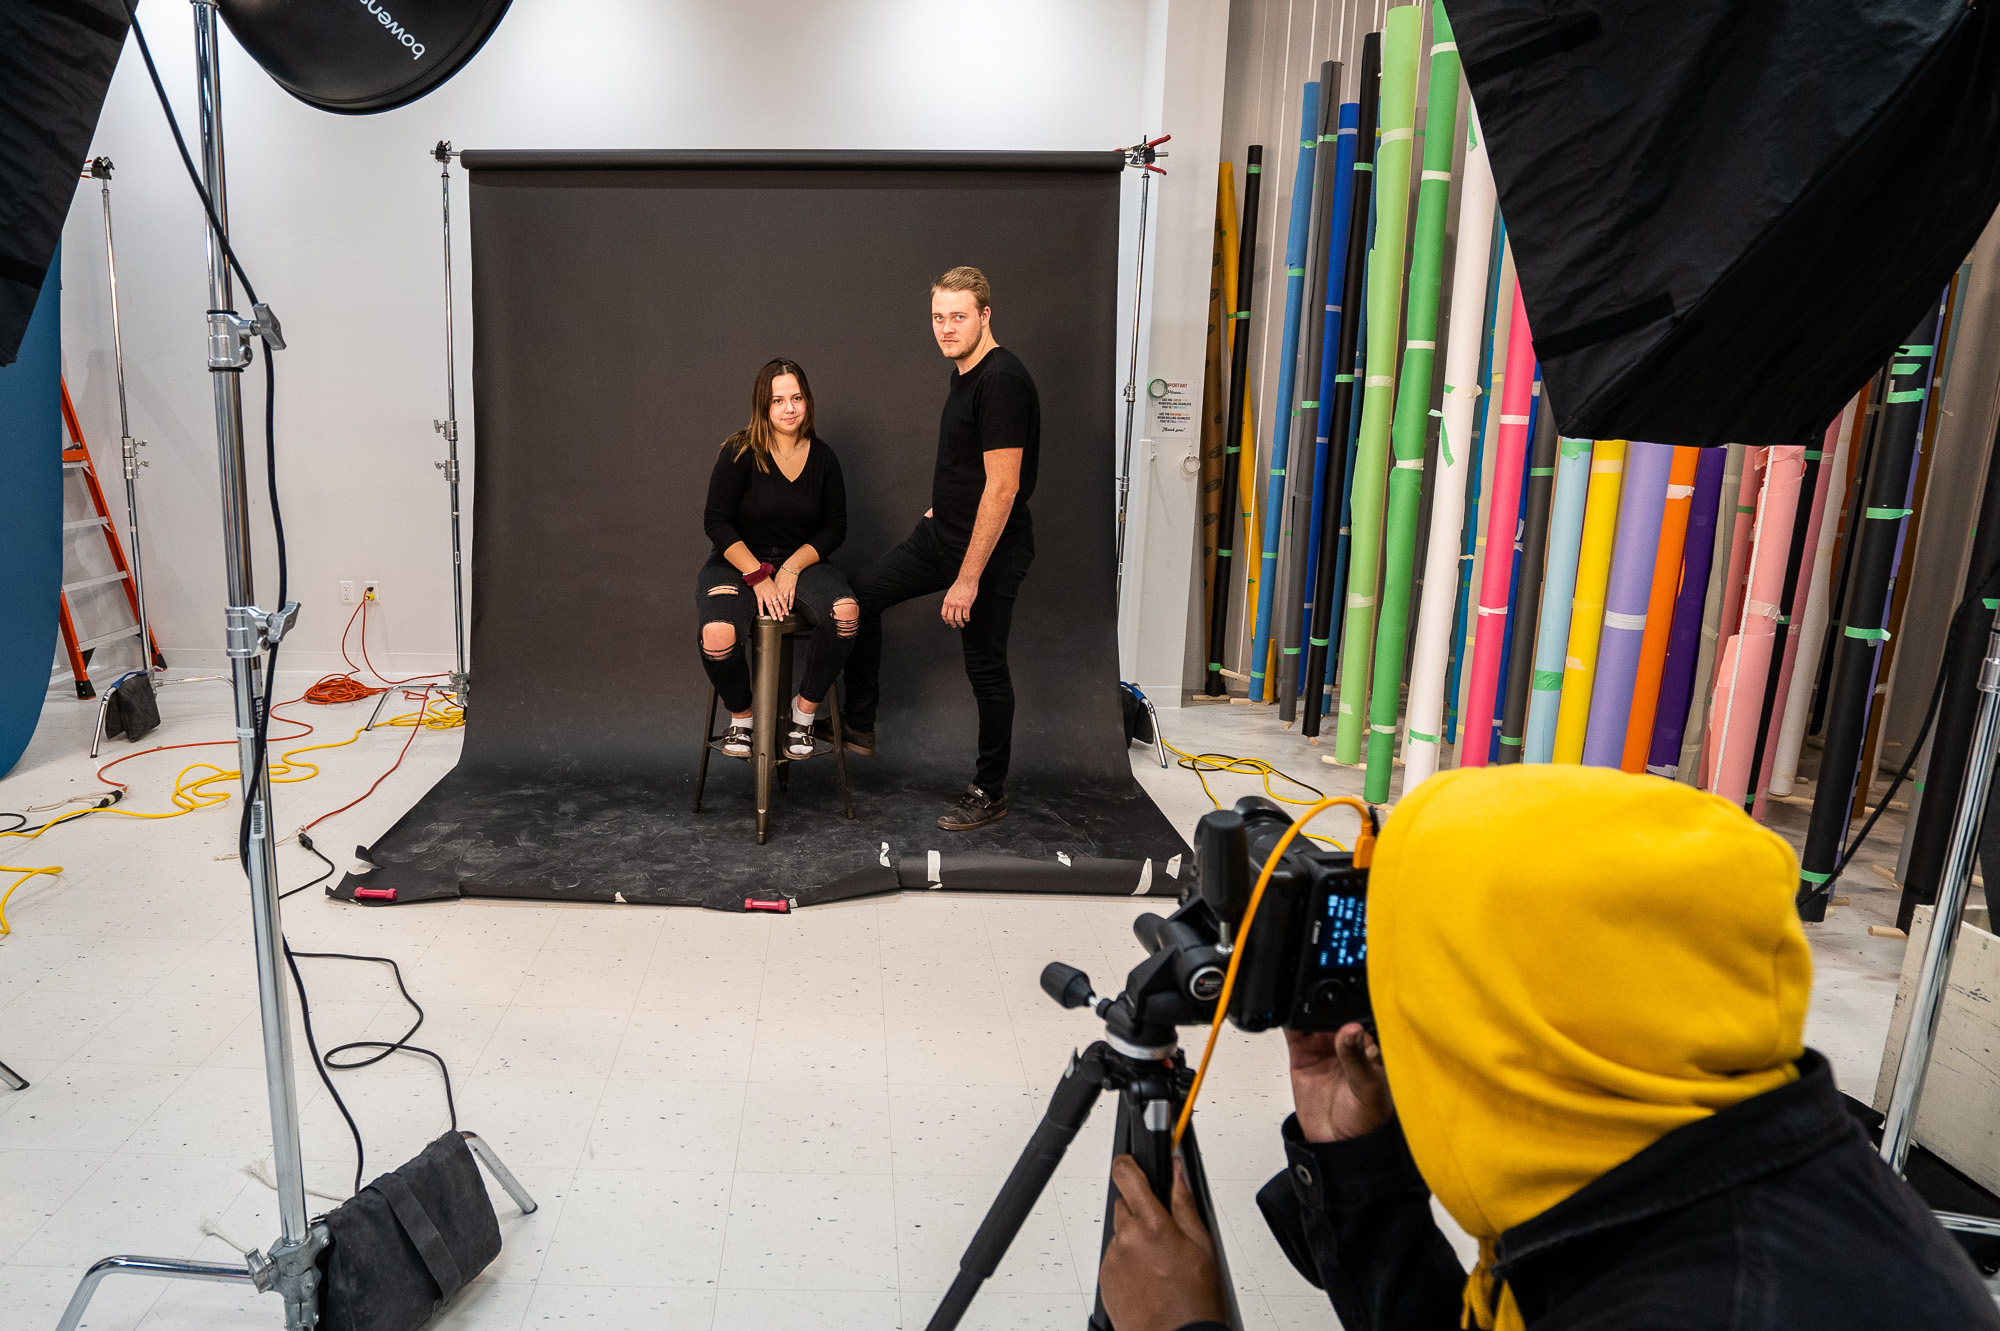 Students working in the photography studio in the downtown location